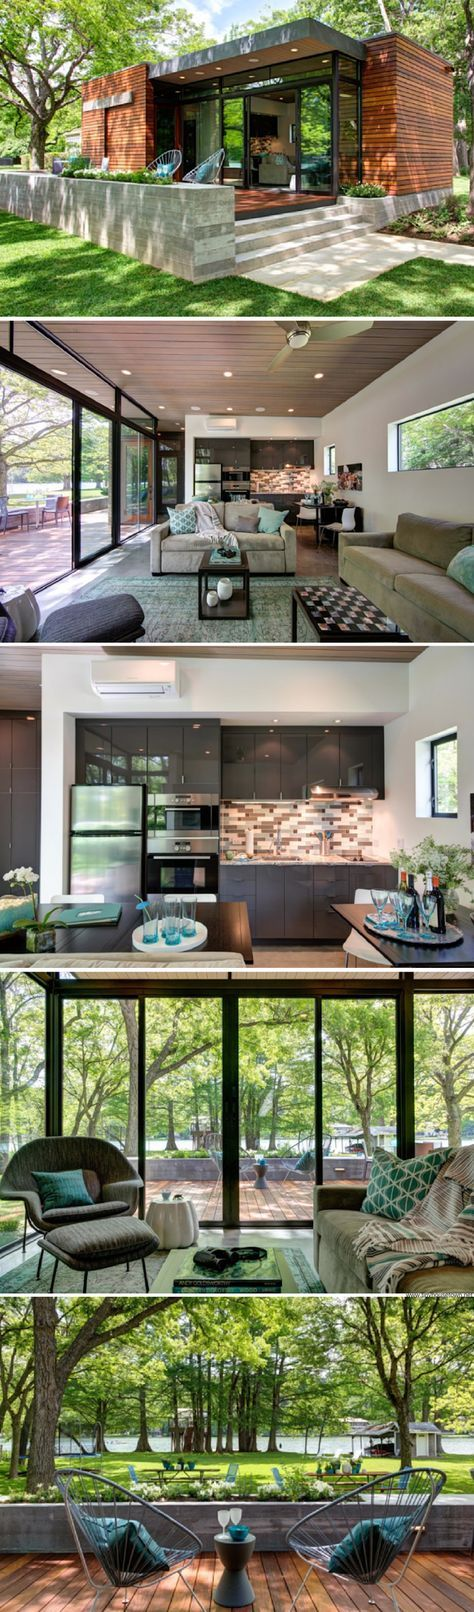 20 Best House Of Dream Images On Pinterest | Architecture, Backyard And  Courtyard Design